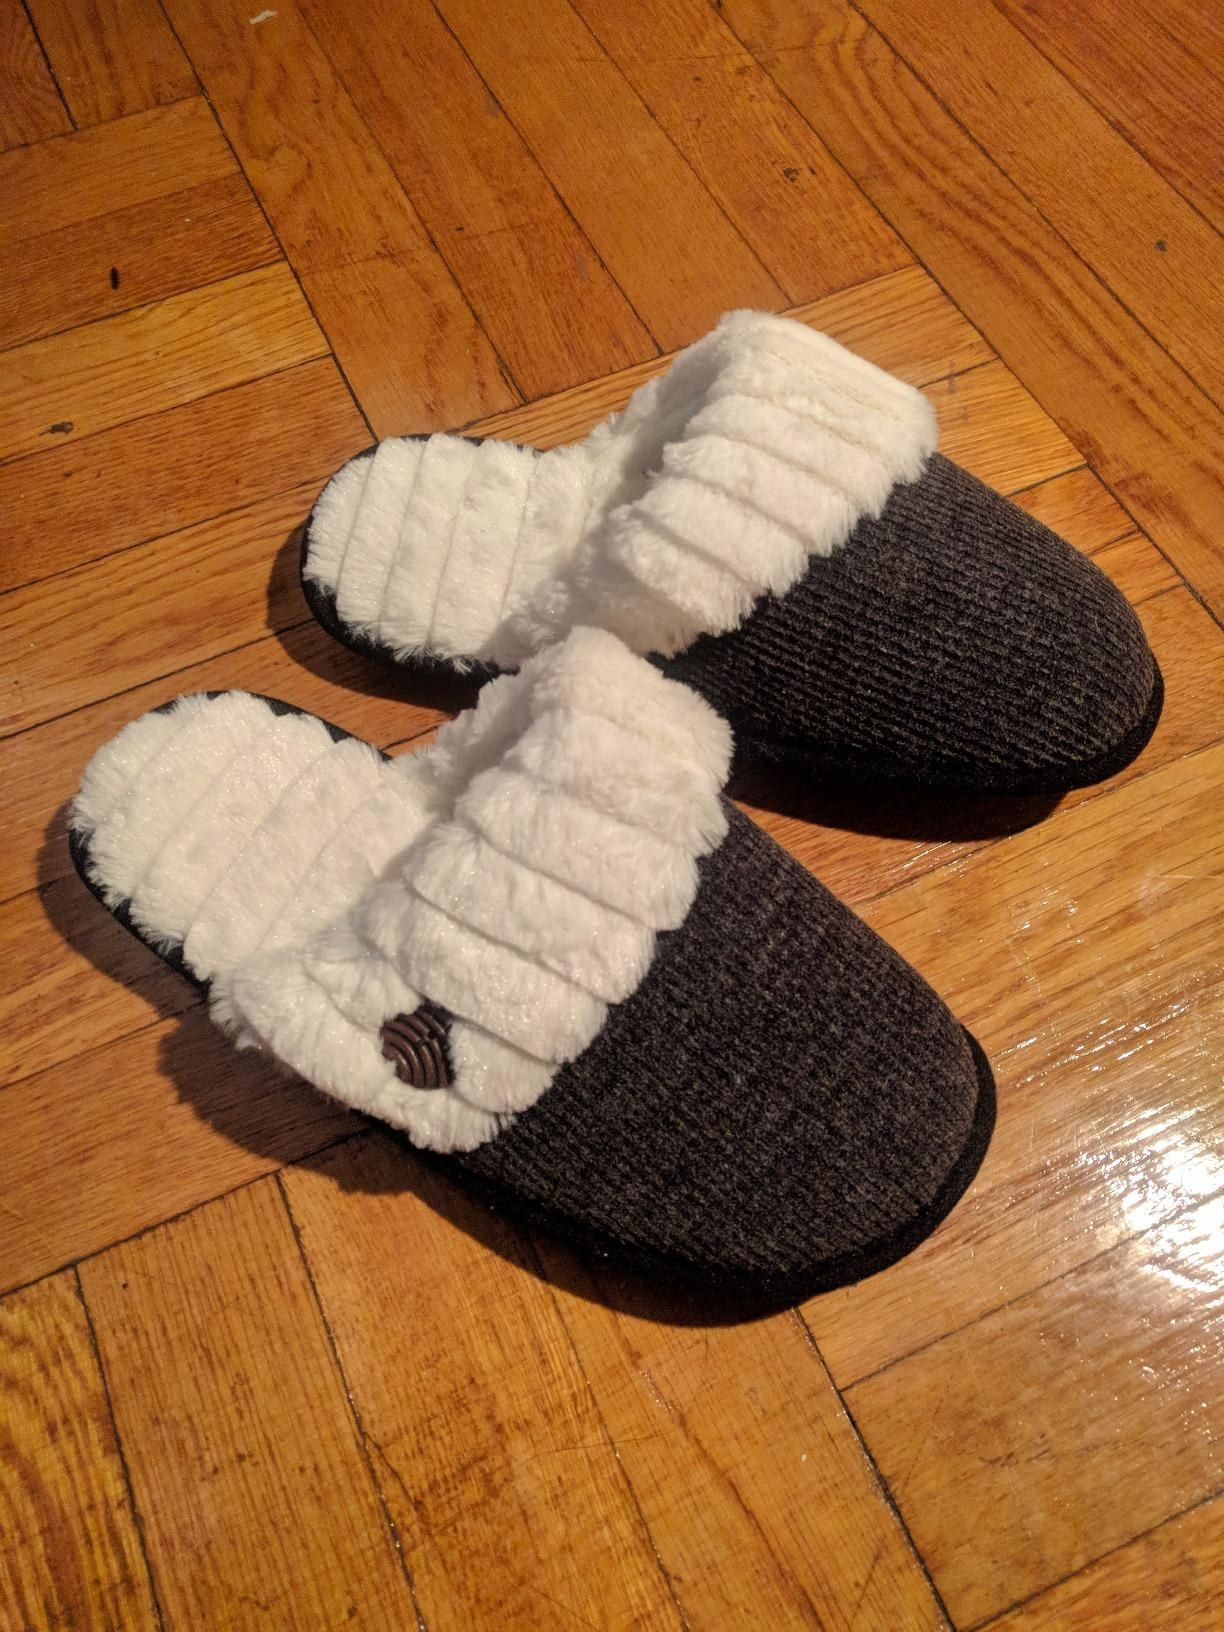 A customer's pair of HomeTop fuzzy knitted slippers